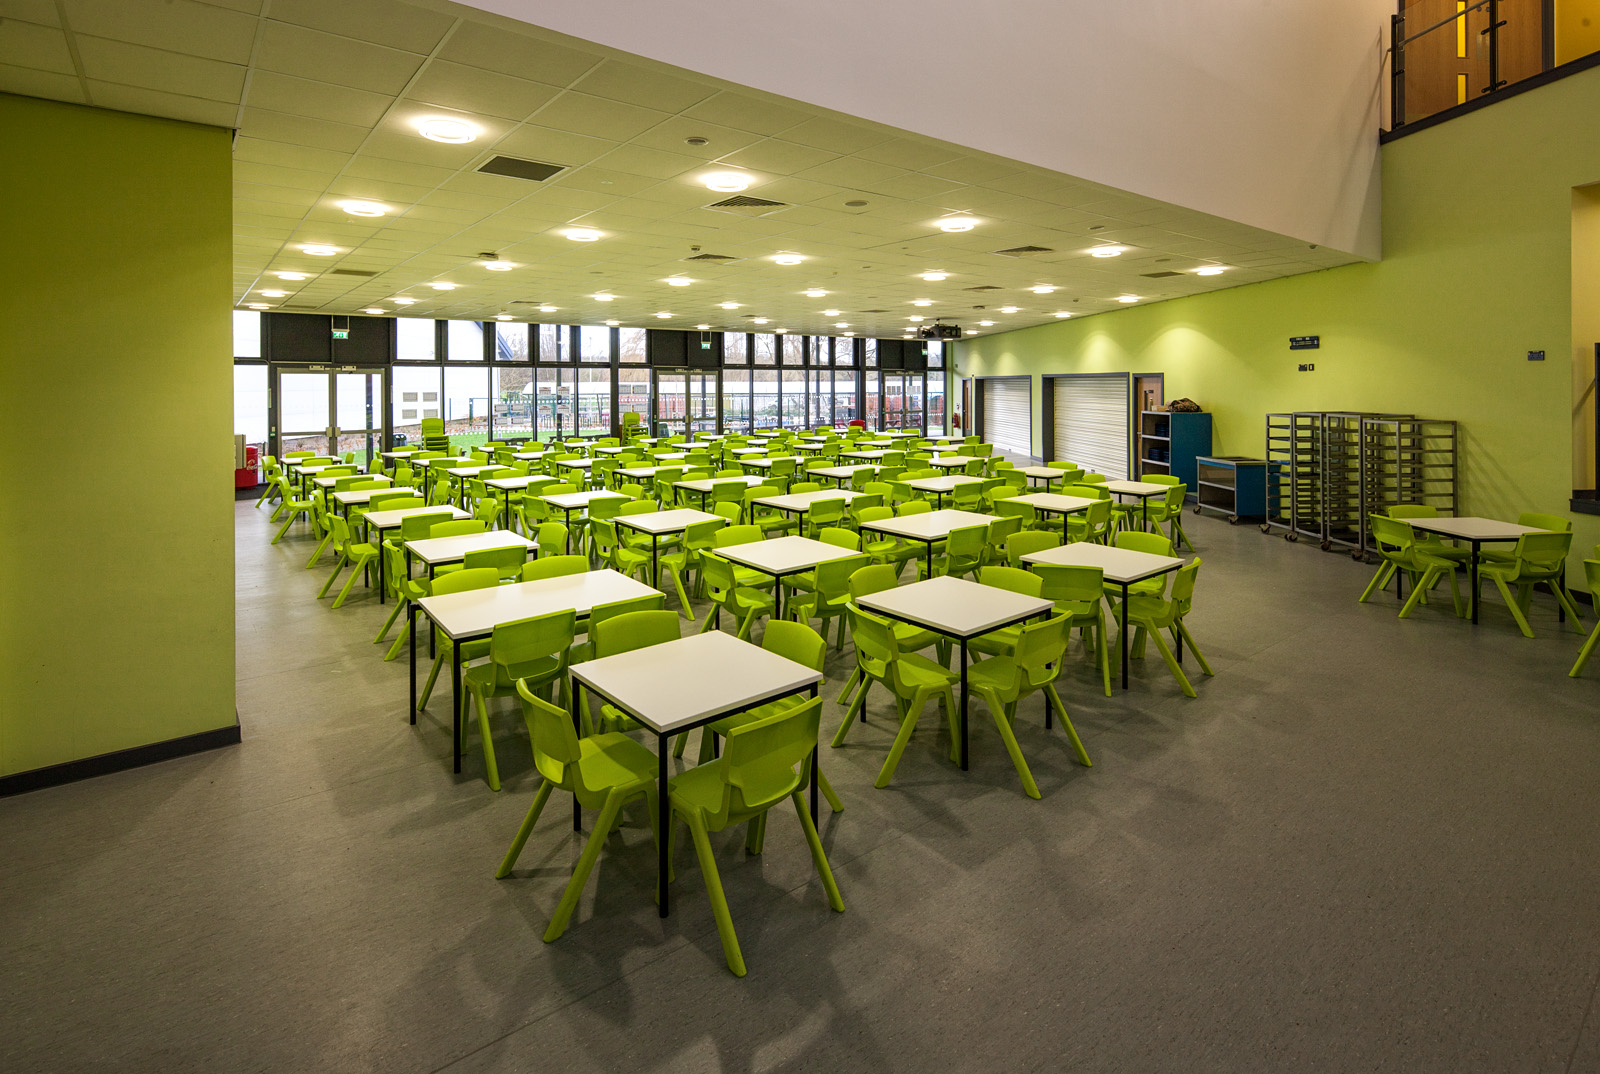 Tables at a school dining area